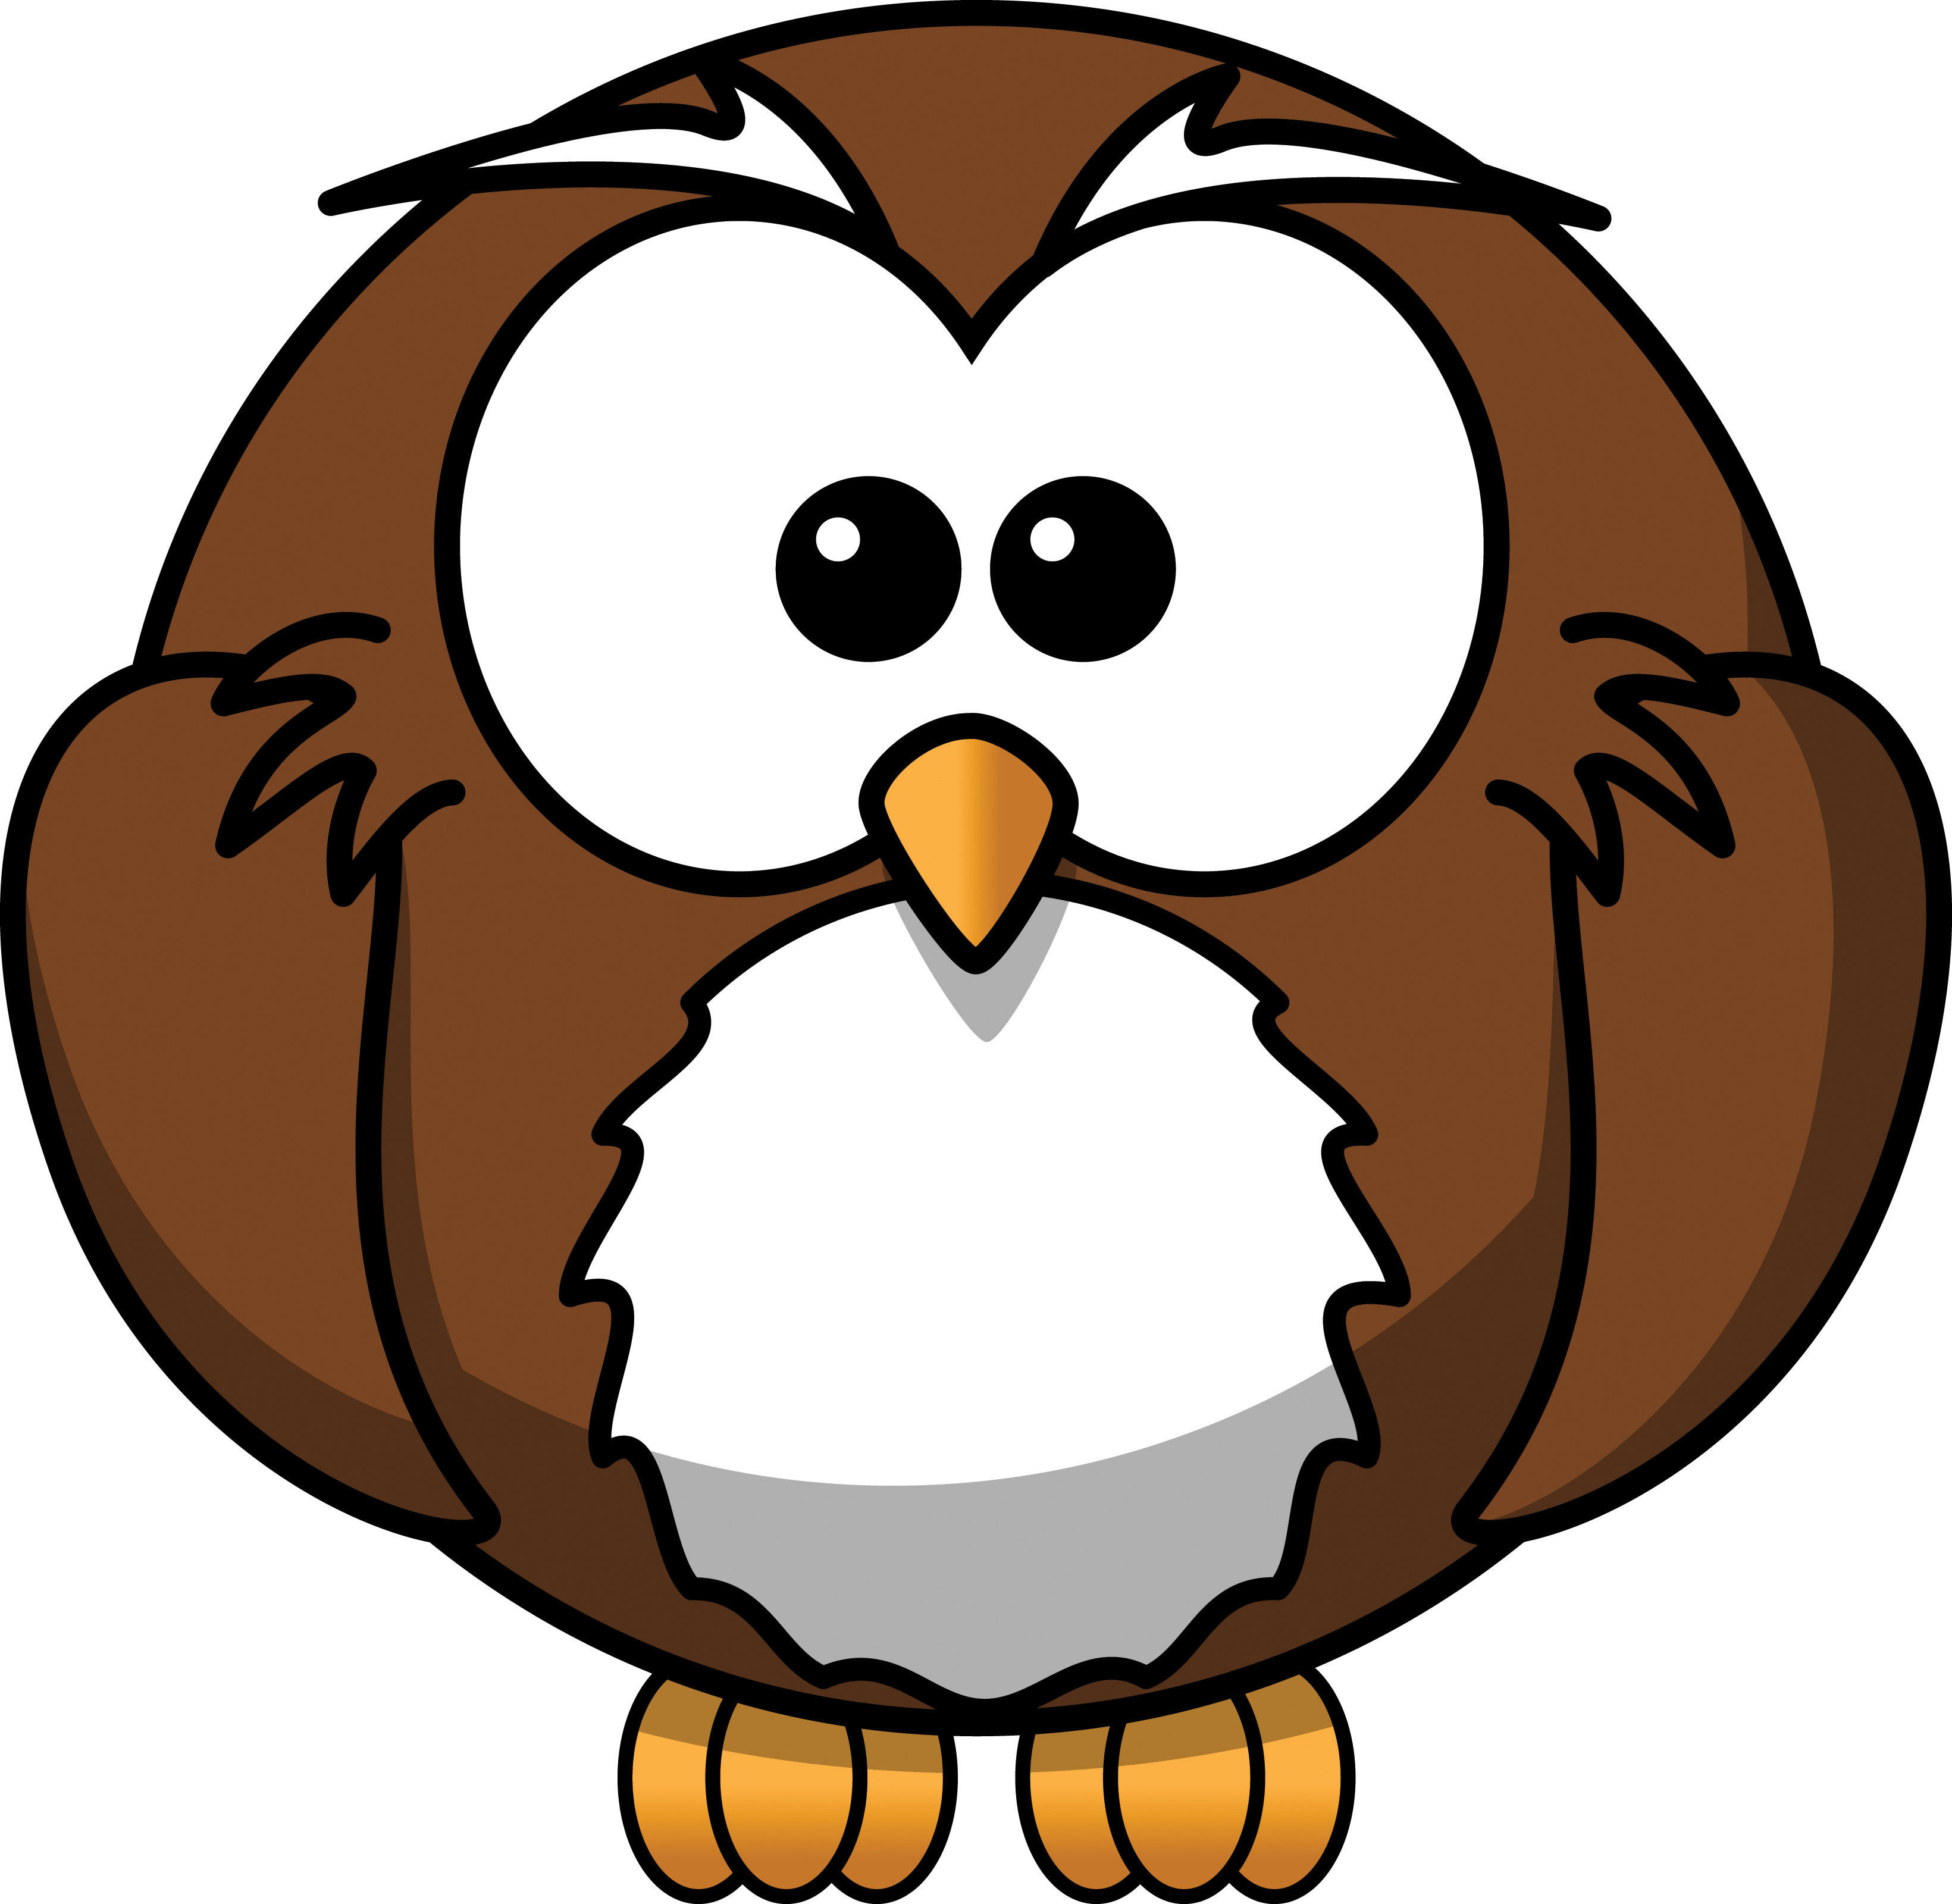 Free Cartoon Owl Clipart By 0001176 .-Free Cartoon Owl Clipart by 0001176 .-4